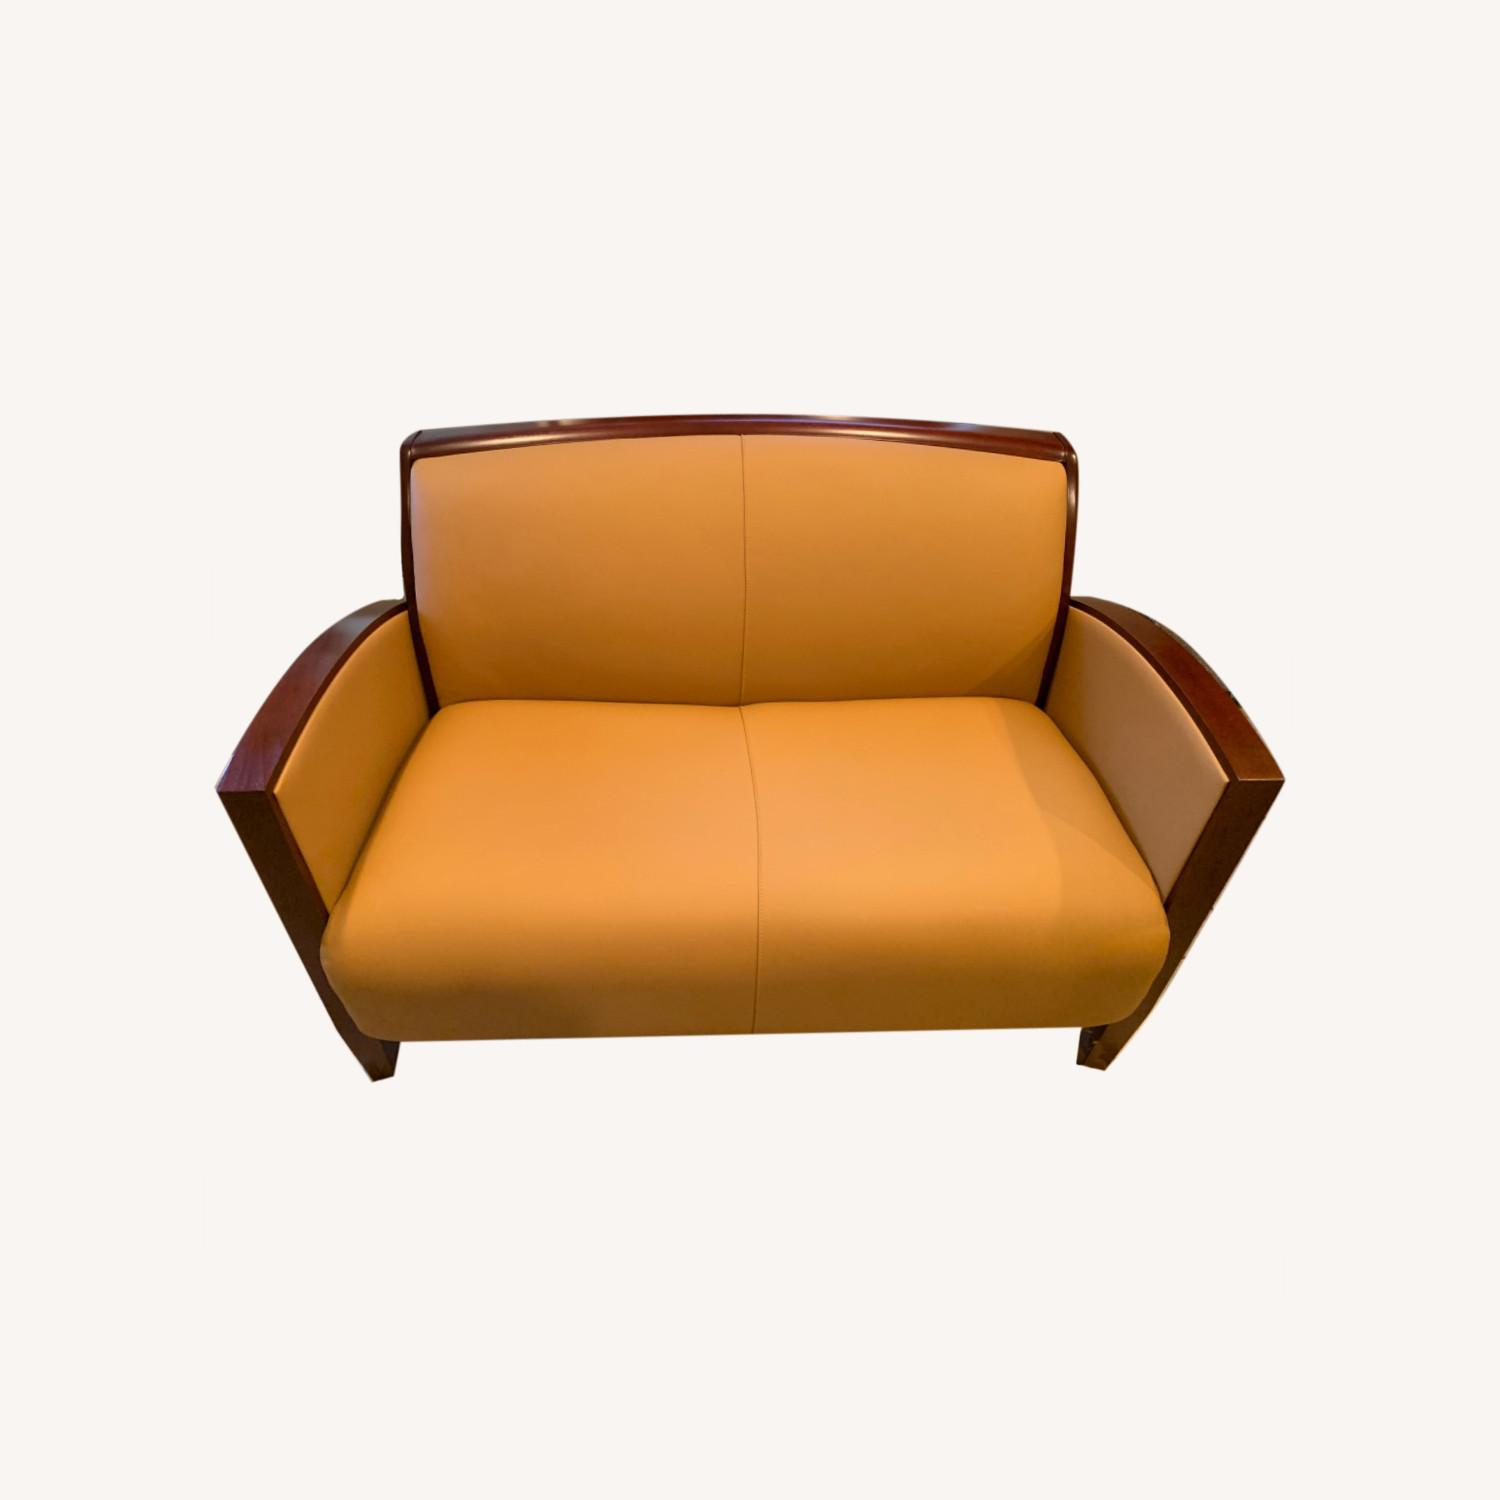 National Office Eloquence Leather Lounge Chair - image-0